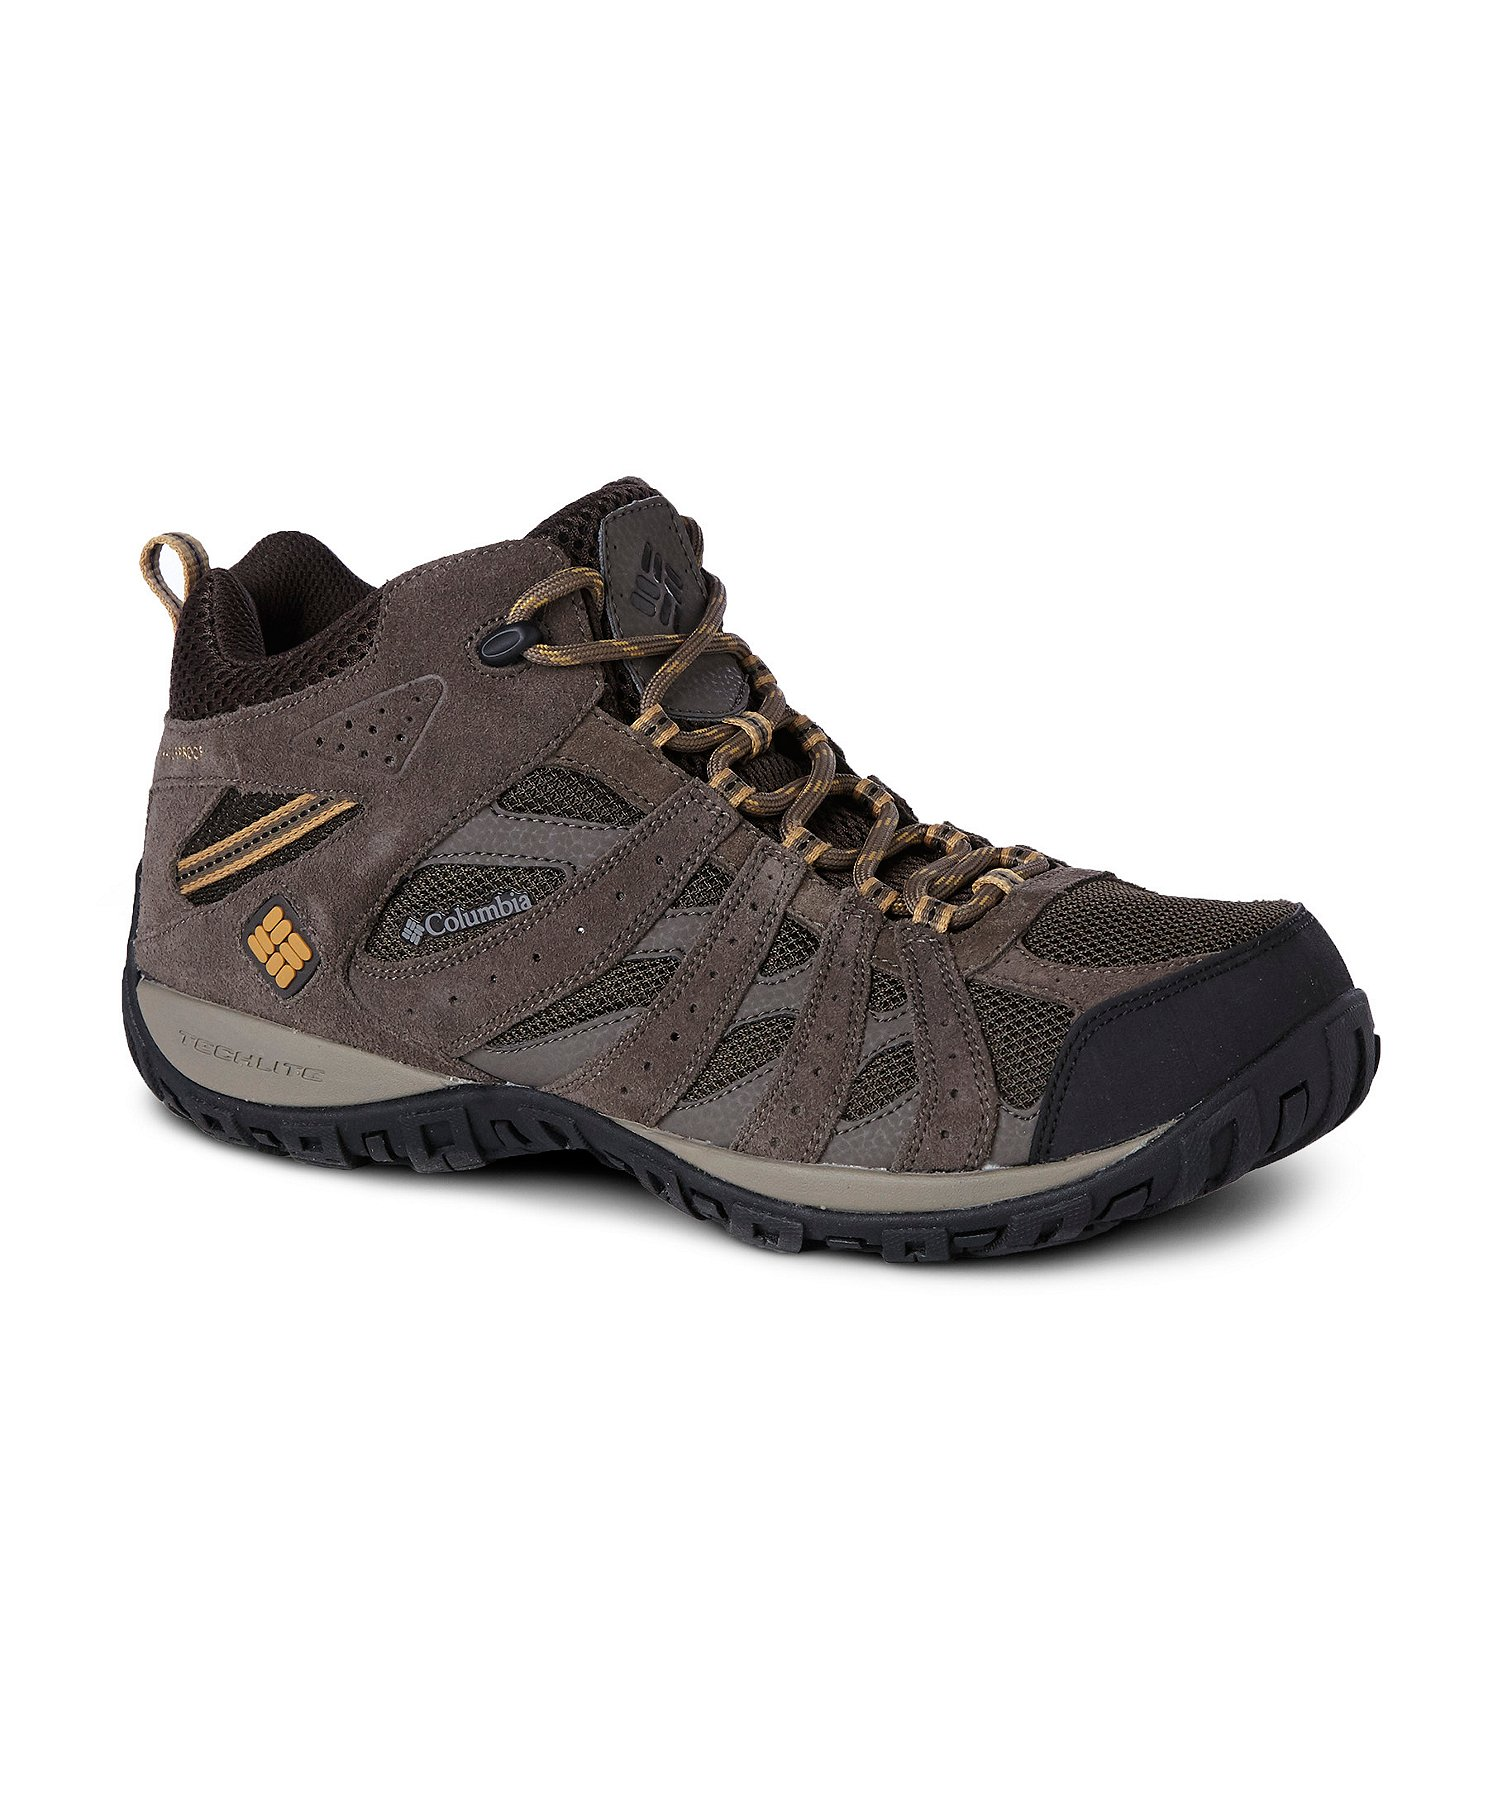 shop for authentic elegant and graceful buying now Men's Redmond Waterproof Mid-Cut Hiking Shoe - Wide 4E